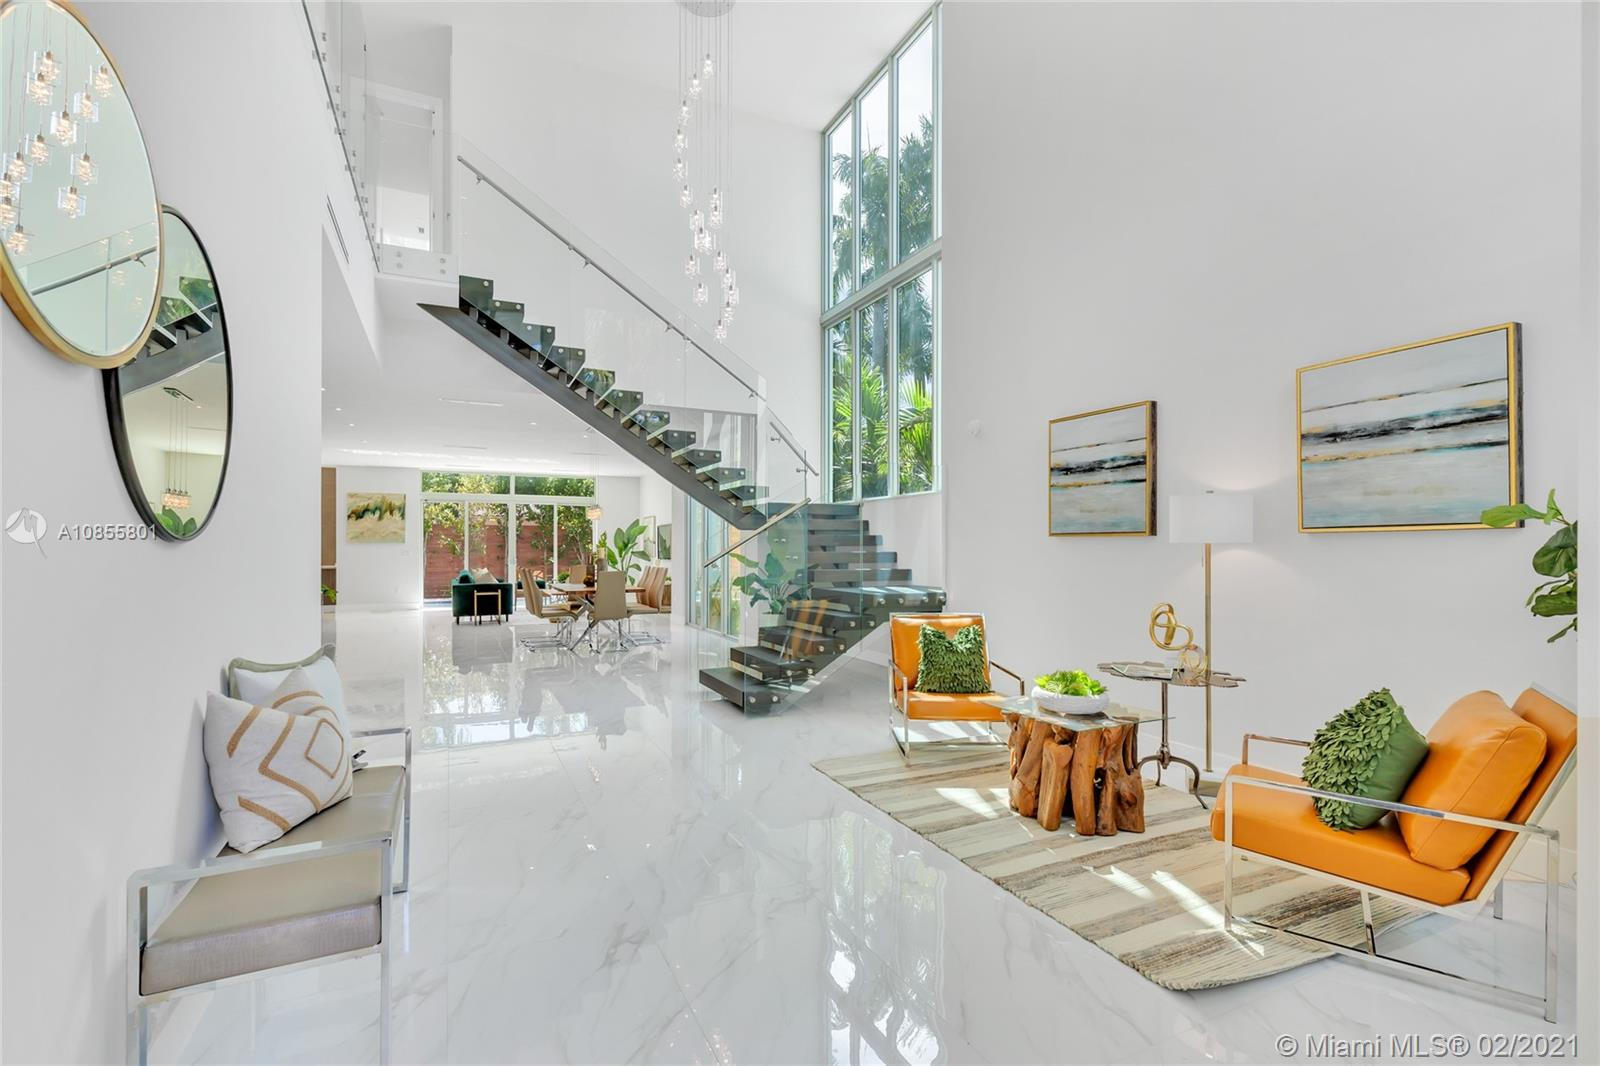 Be the first to live in this exceptional, brand-new modern masterpiece in North Coconut Grove. Custom-built to fit today's contemporary lifestyle, this 4 bedroom, 3.5 bath home features a beautifully-designed open floor plan with stunning floor-to-ceiling windows, gorgeous crystal chandeliers,  large chef's kitchen with state-of-the-art appliances,  and lavish pool area perfect for both retreating and entertaining. Master suite features a spectacular spa bath, custom closets, a study and private balcony. Additional features include high-impact doors and windows, an 8-ft privacy fence, security cameras, recessed lighting, floating steel staircase and concrete block construction throughout the entire home. Experience unparalleled luxury and comfort in the heart of Coconut Grove!